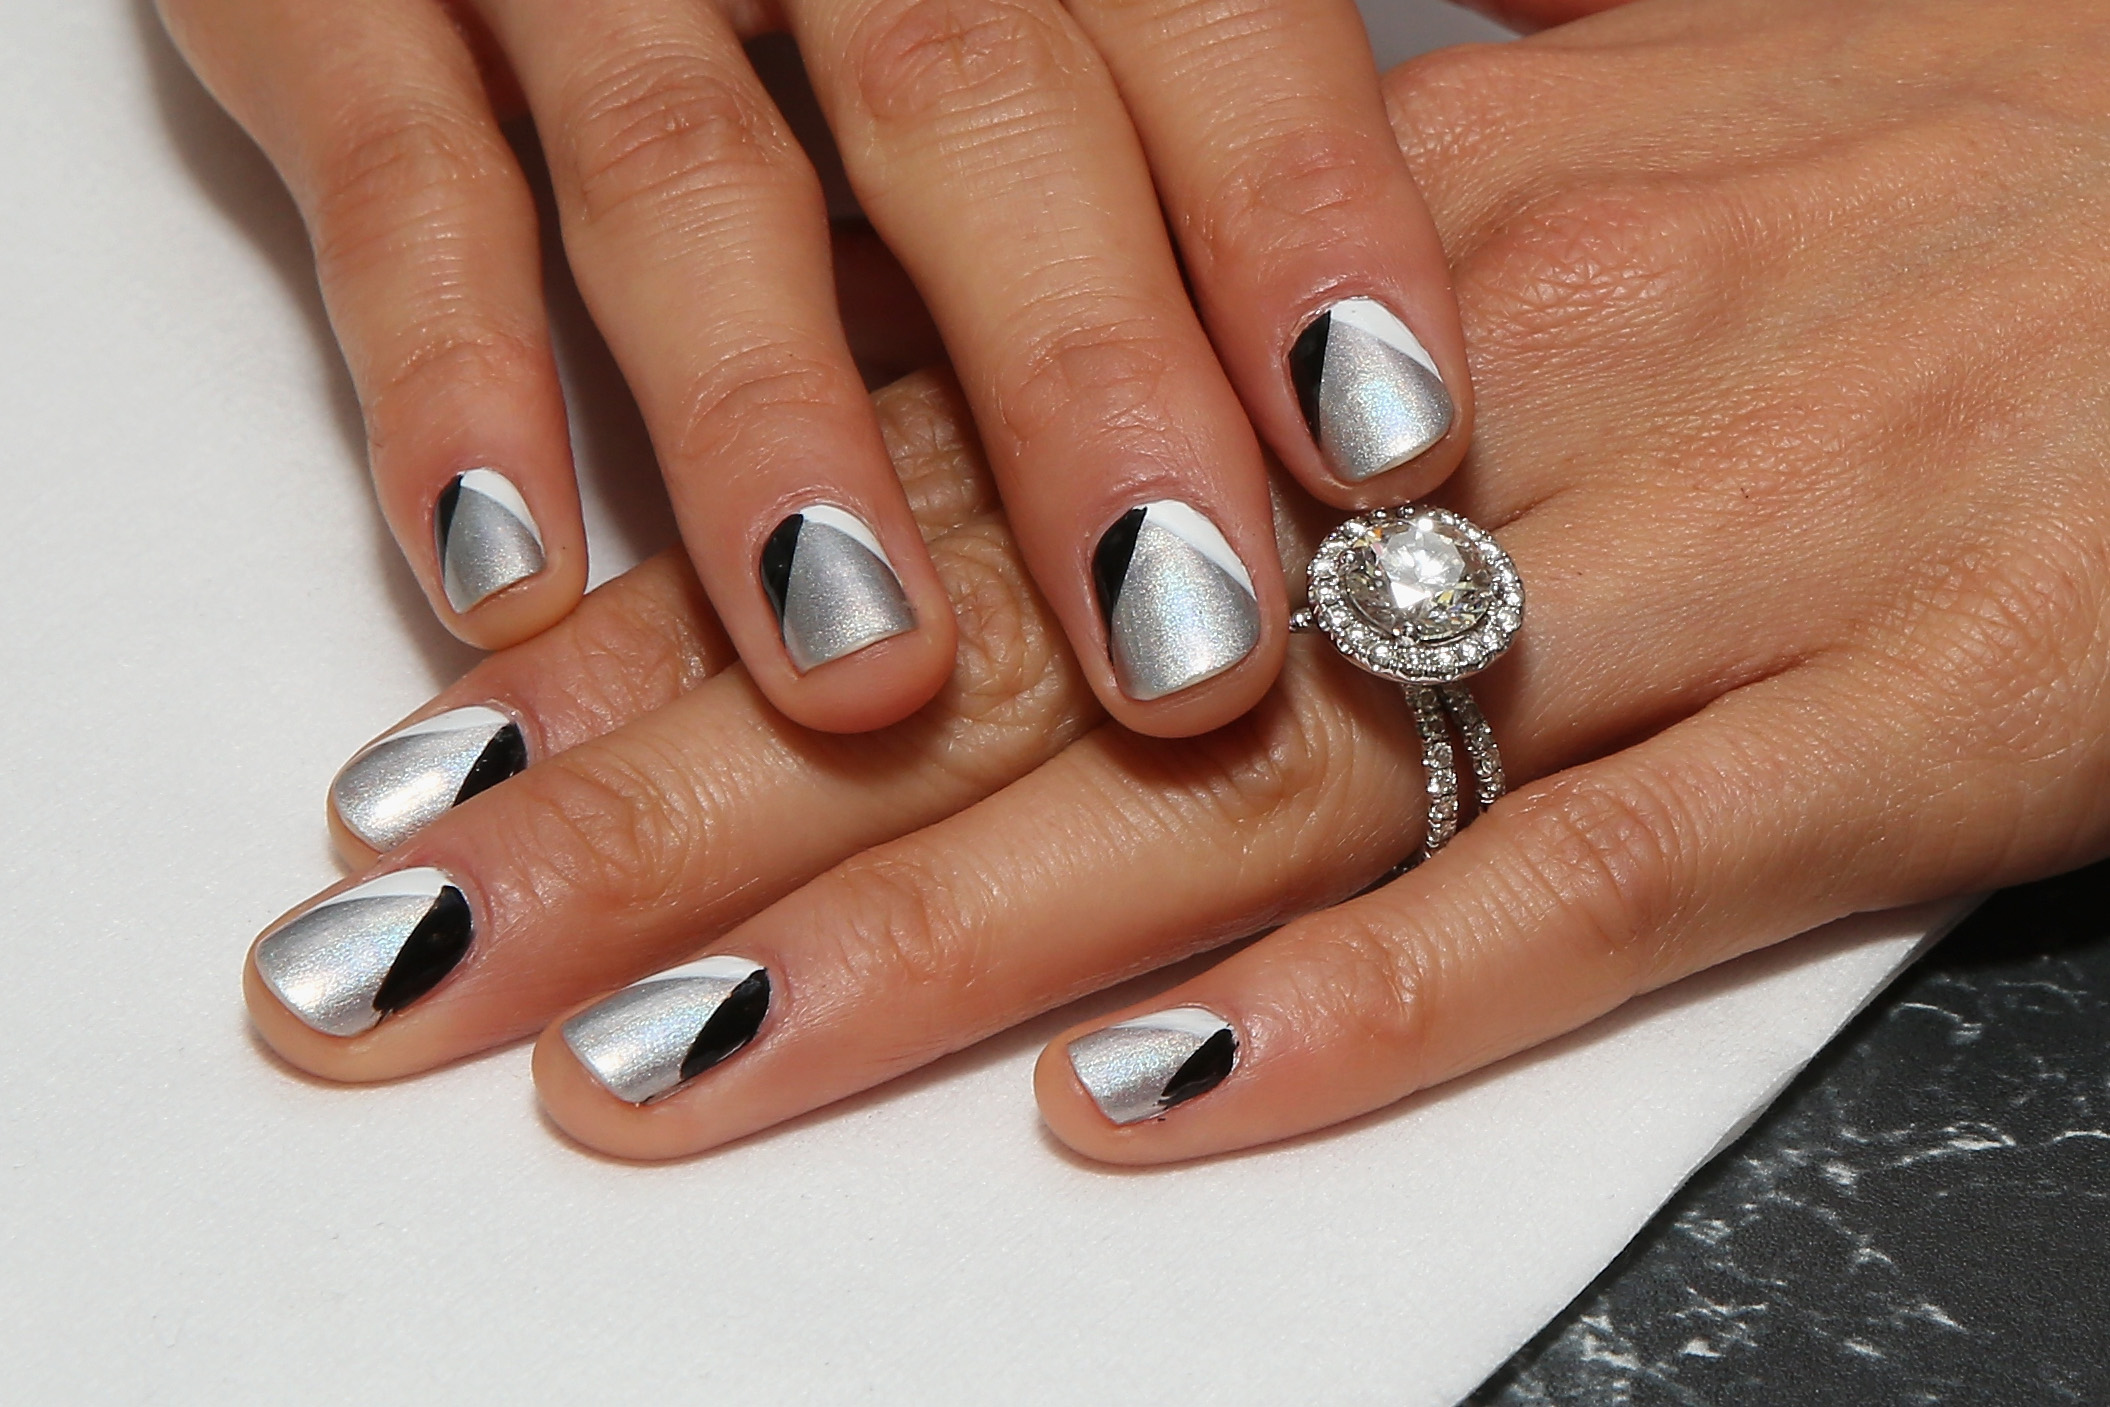 Coffin Nails Stiletto Nails The Other 8 Nail Shapes You Should Definitely Know Before Your